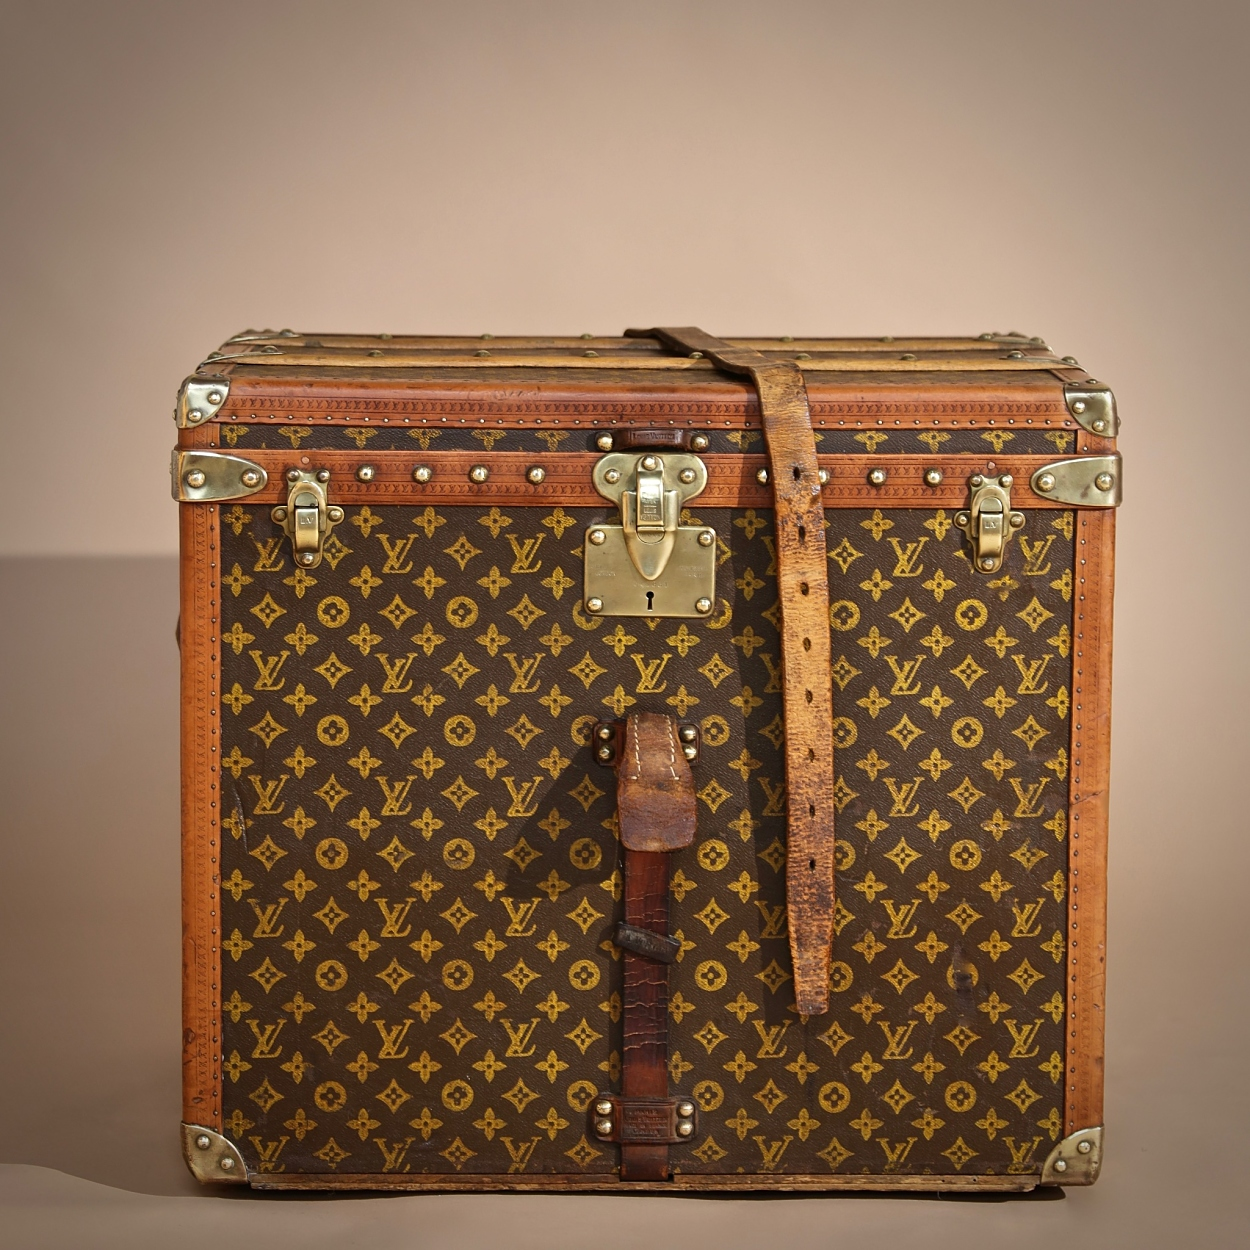 the-well-traveled-trunk-louis-vuitton-thumbnail-product-5735